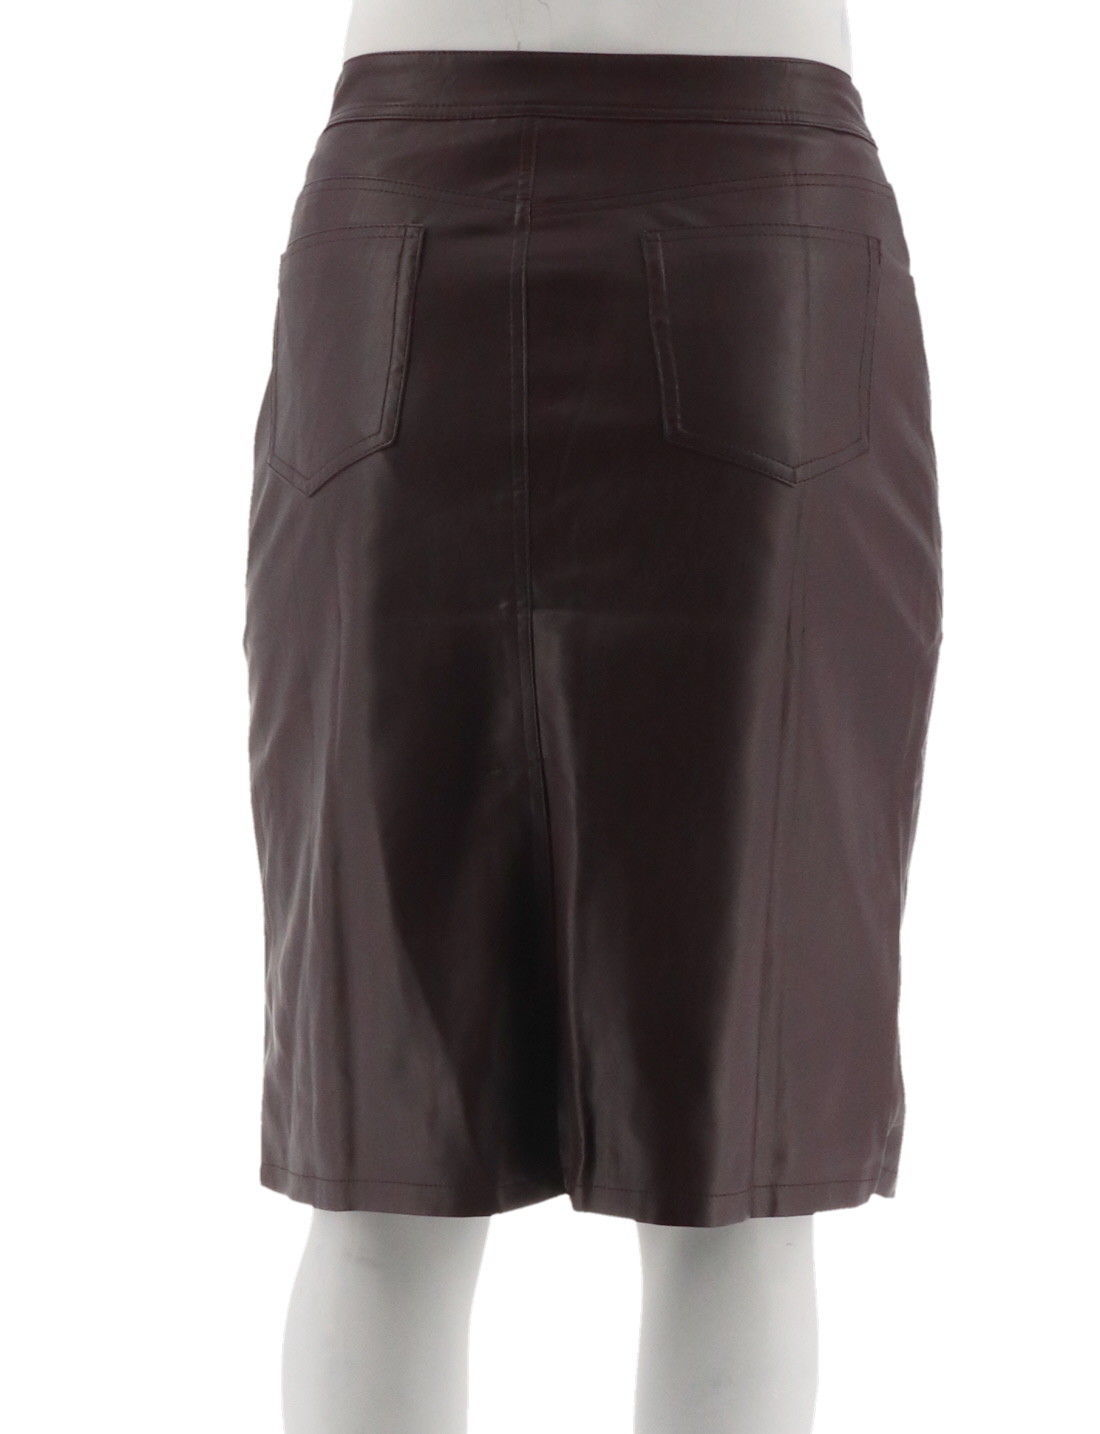 Denim & Co Mid Length Faux Leather Boot Skirt Deep Burgundy 12 NEW A270189